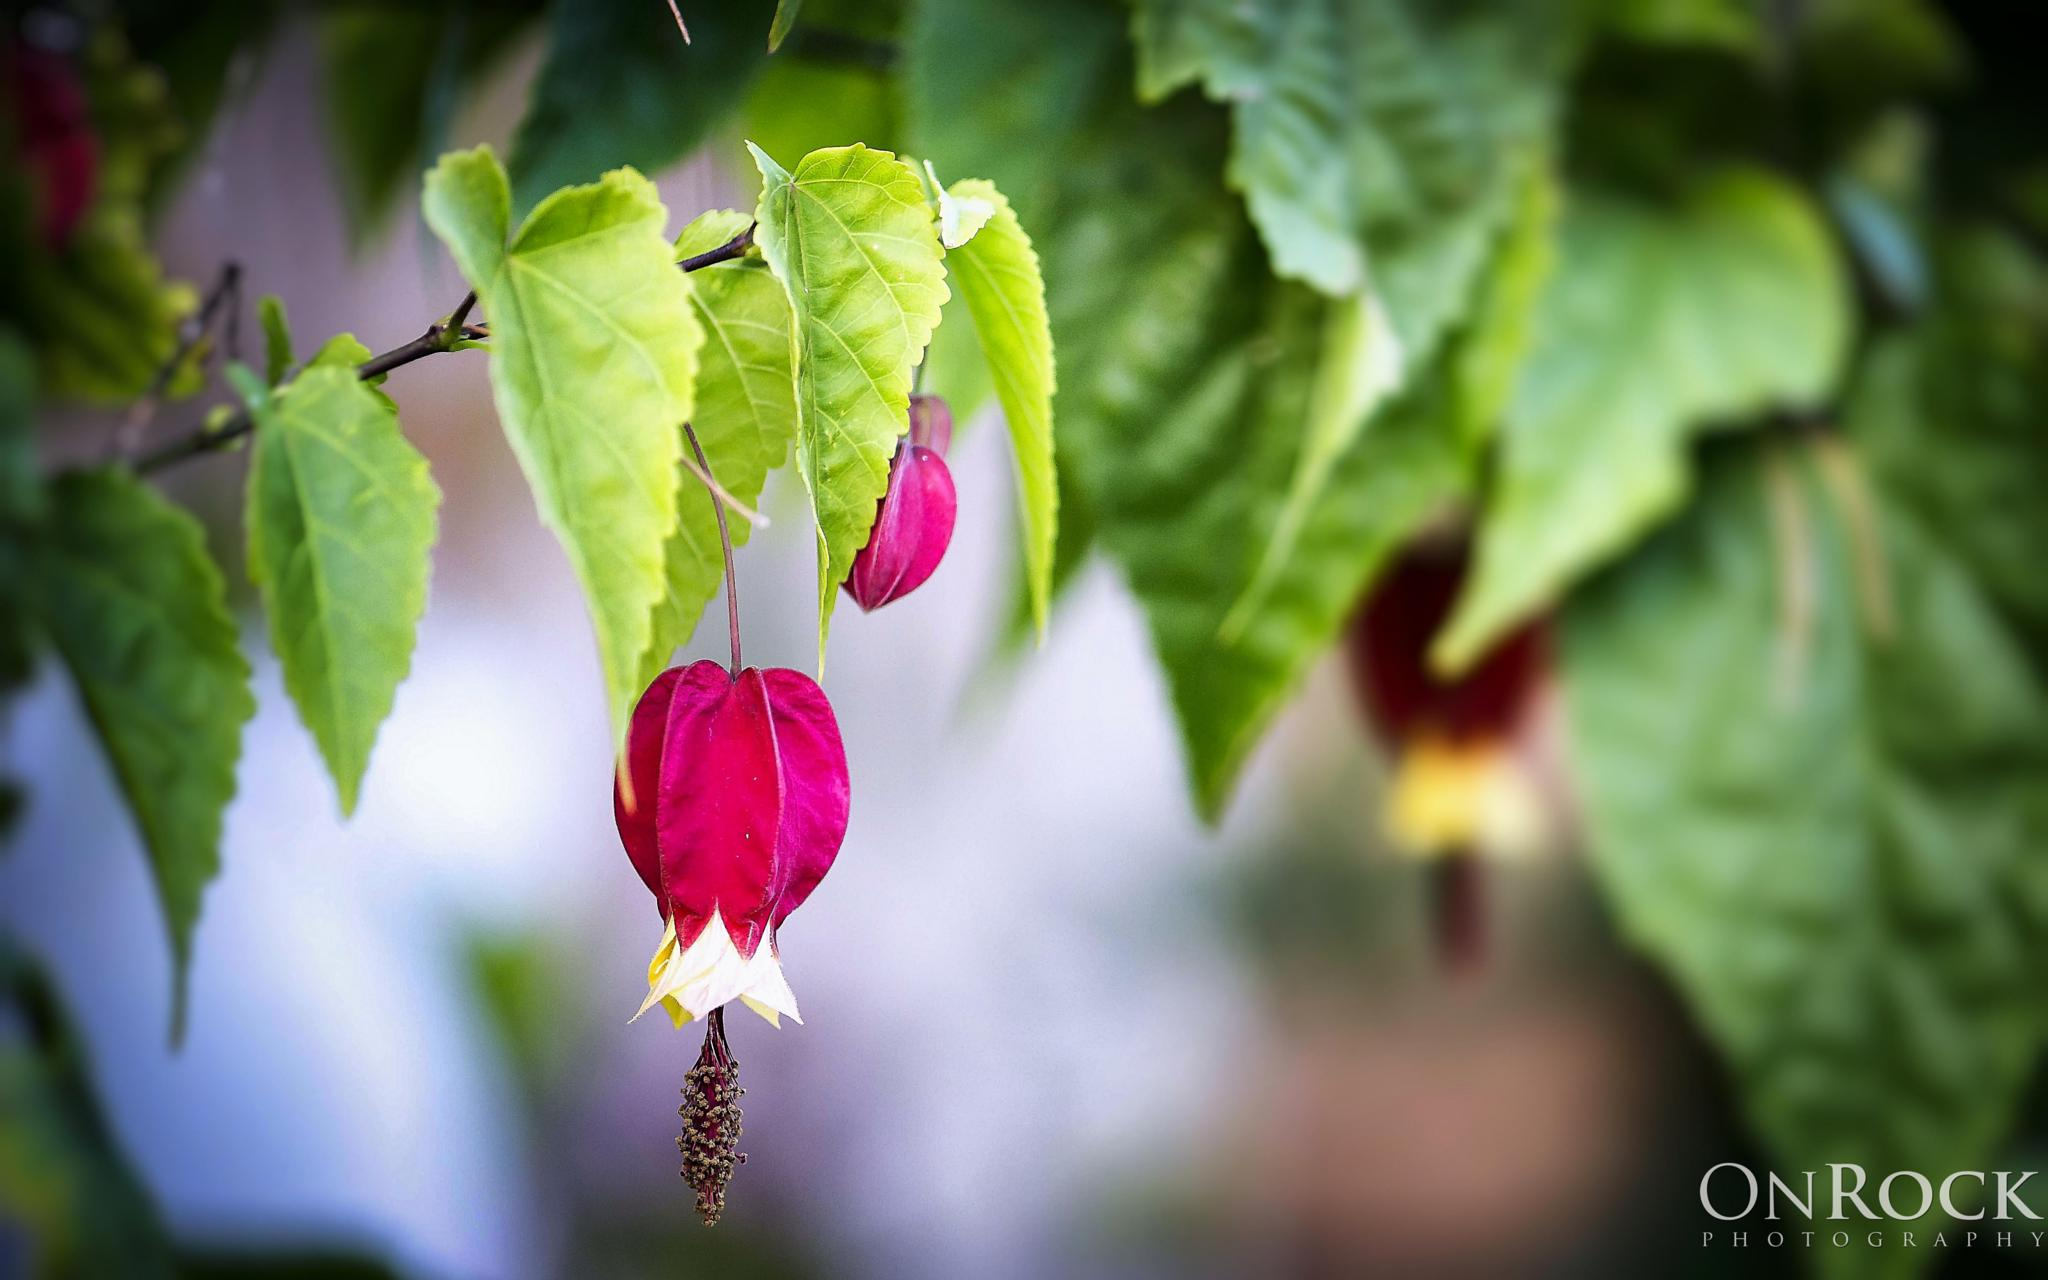 Flower Bell by OnRock Photography